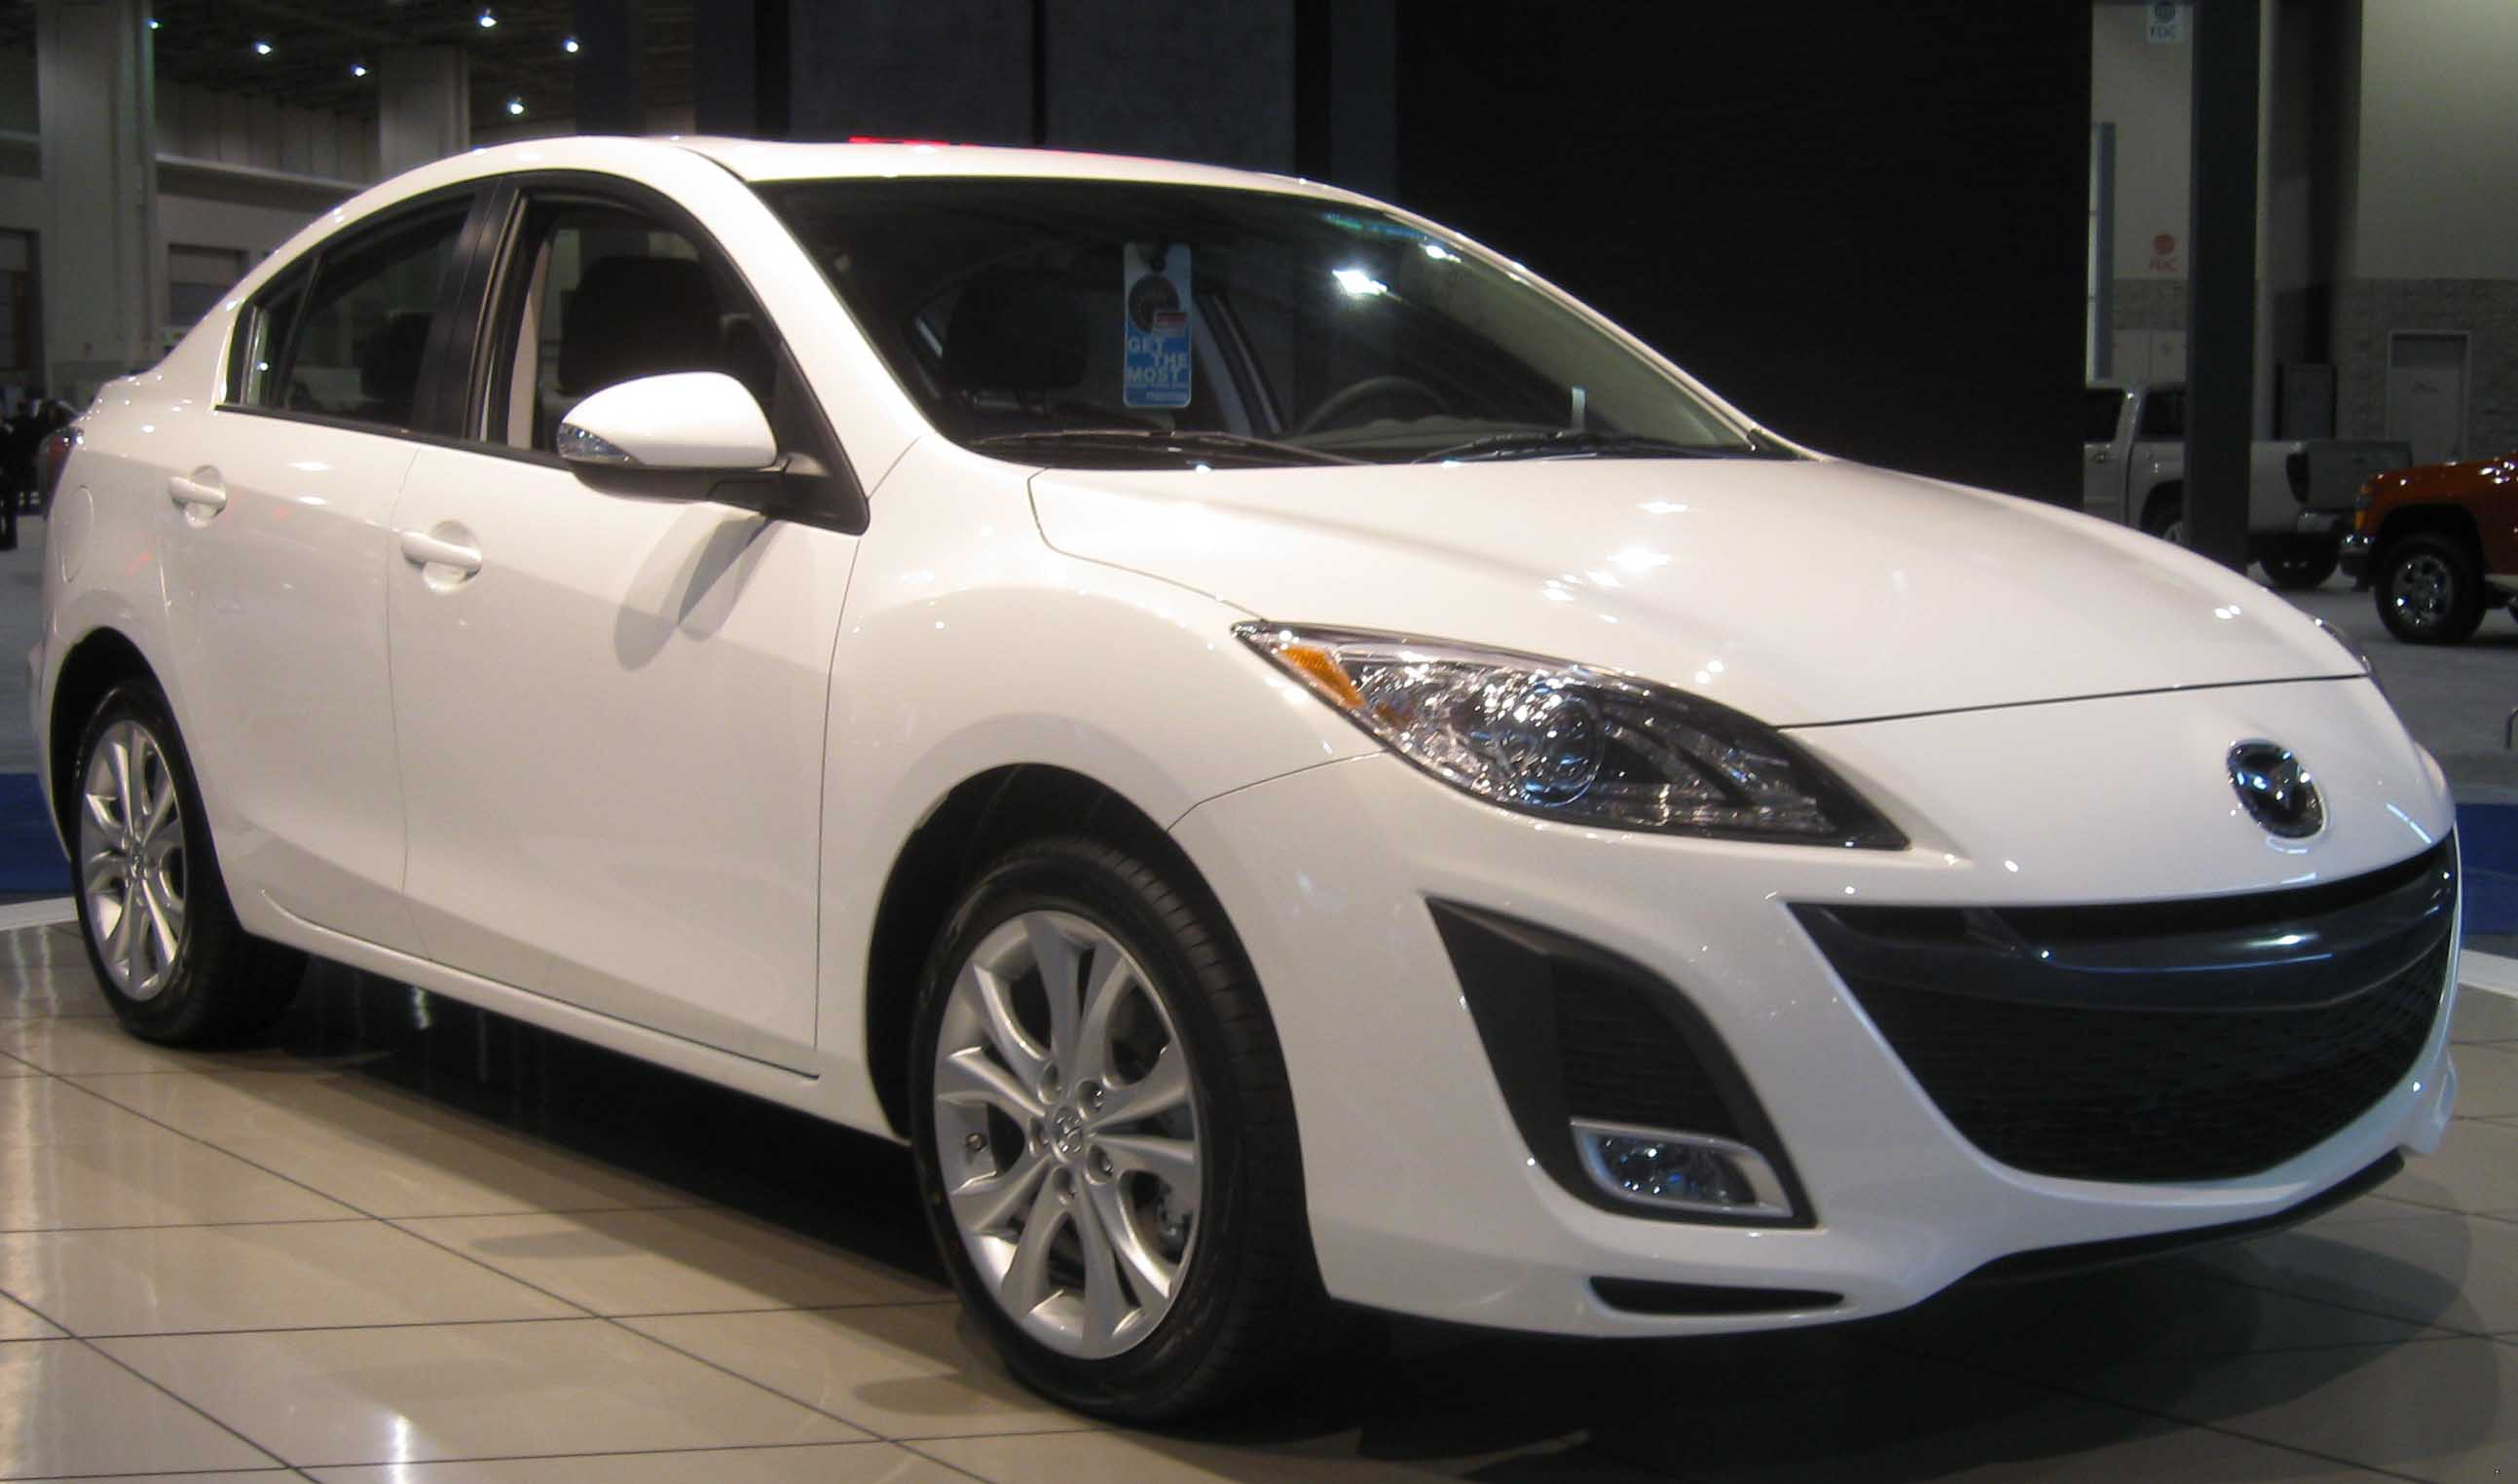 file 2010 mazda3 sedan 2 5 wikimedia commons. Black Bedroom Furniture Sets. Home Design Ideas